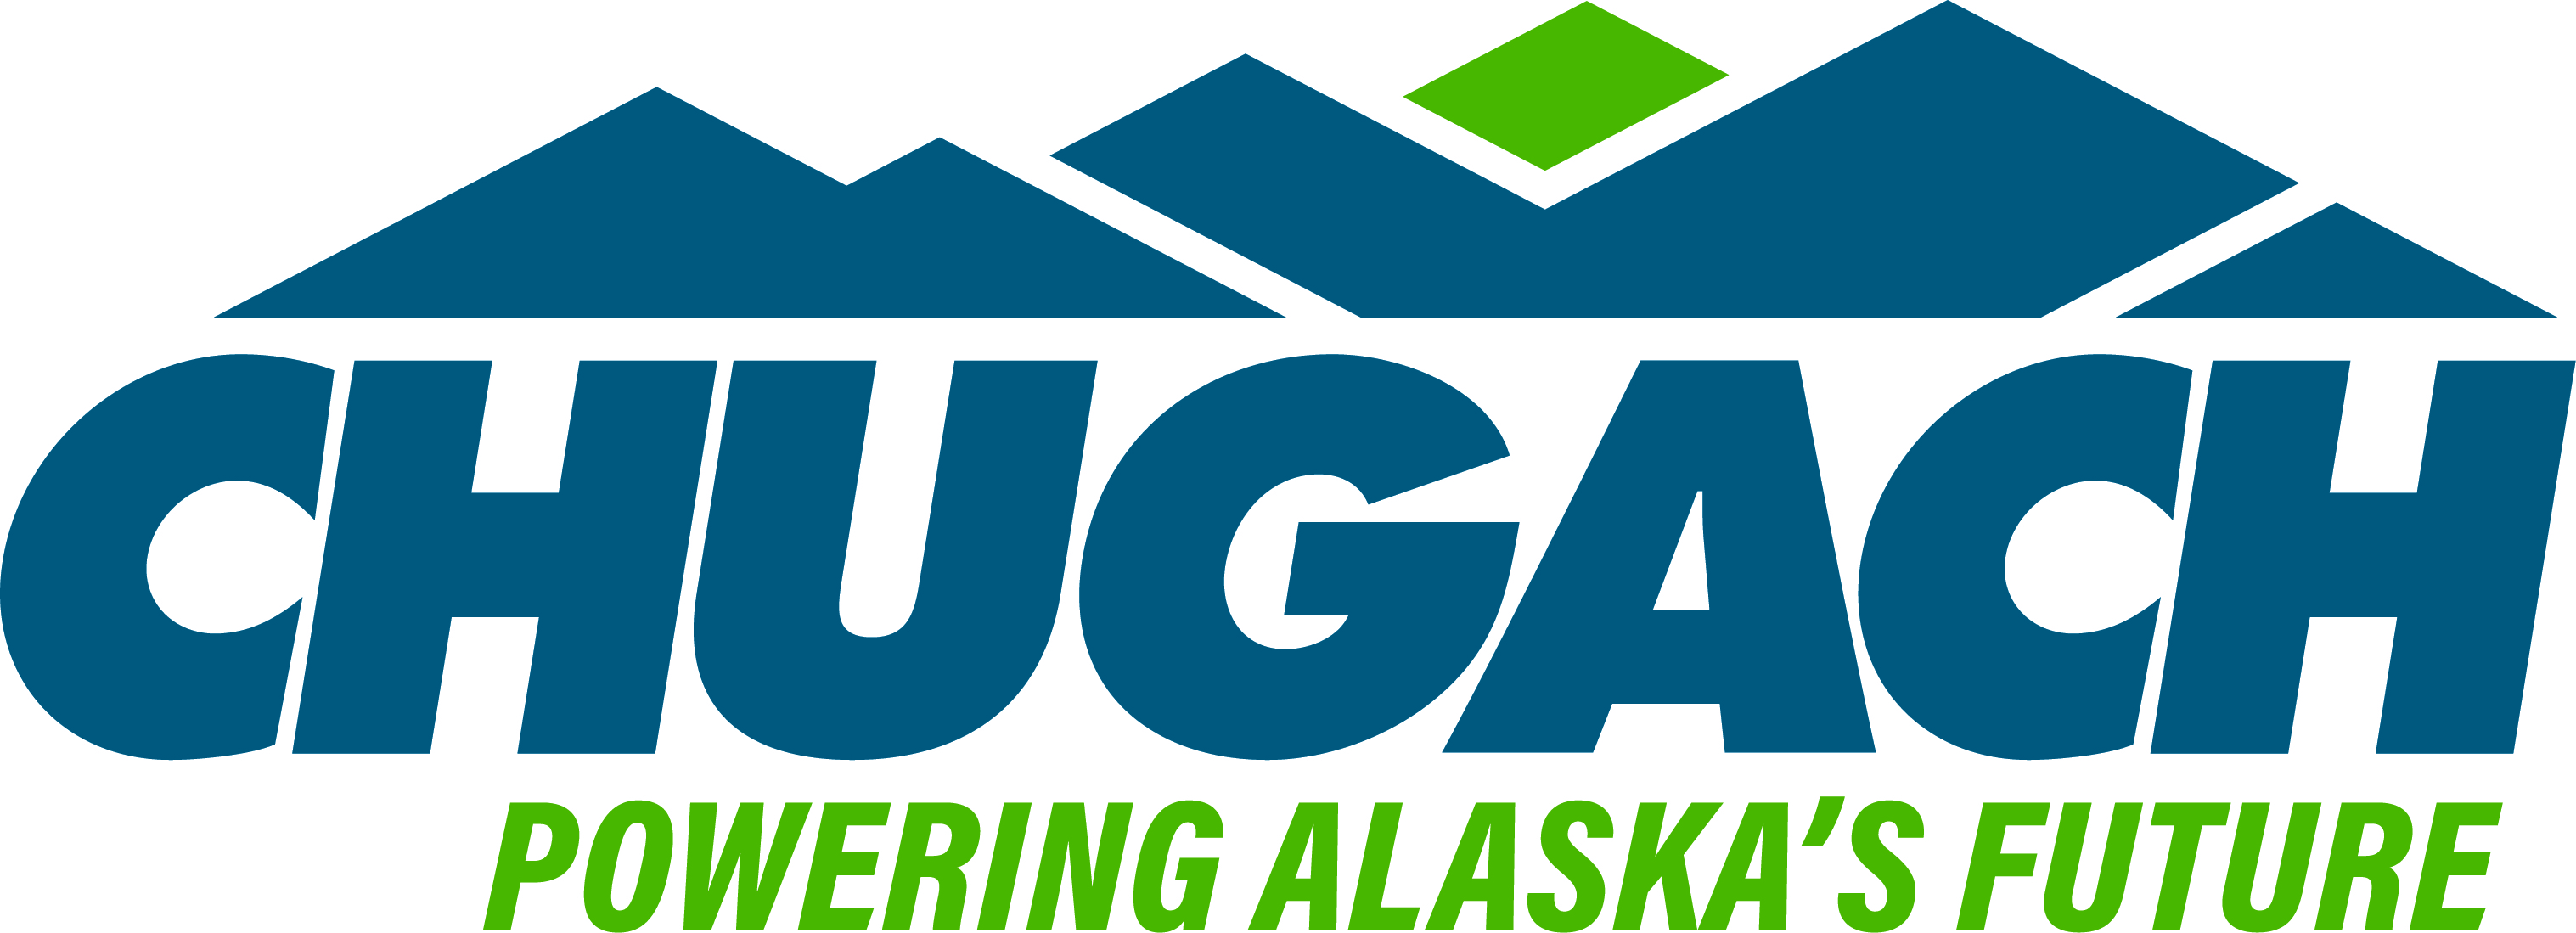 Chugach Electric Association